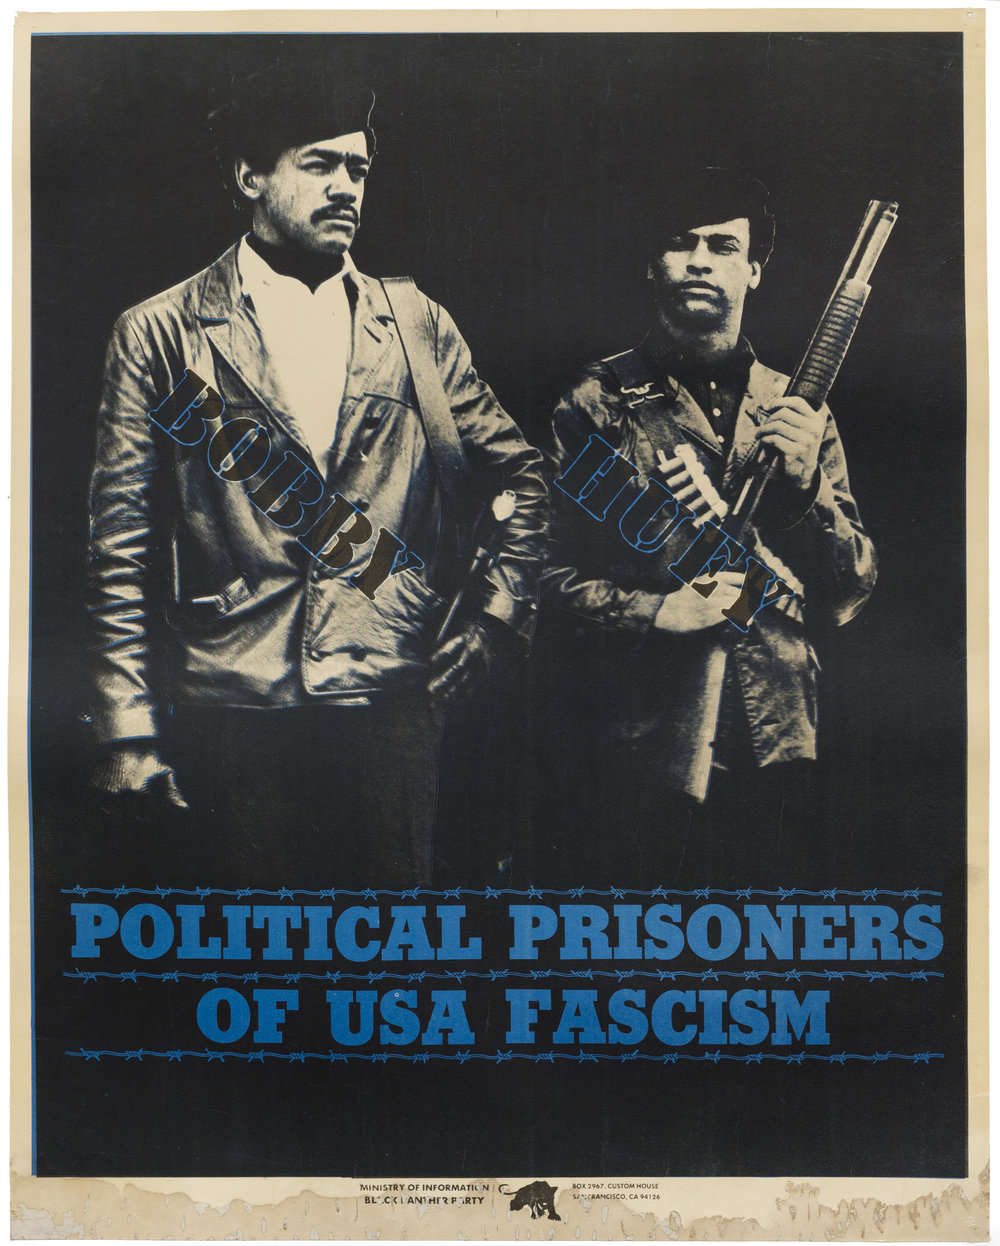 mima_get up stand up_black panthers_POLITICAL PRISONERS OF USA FASCISM.jpg